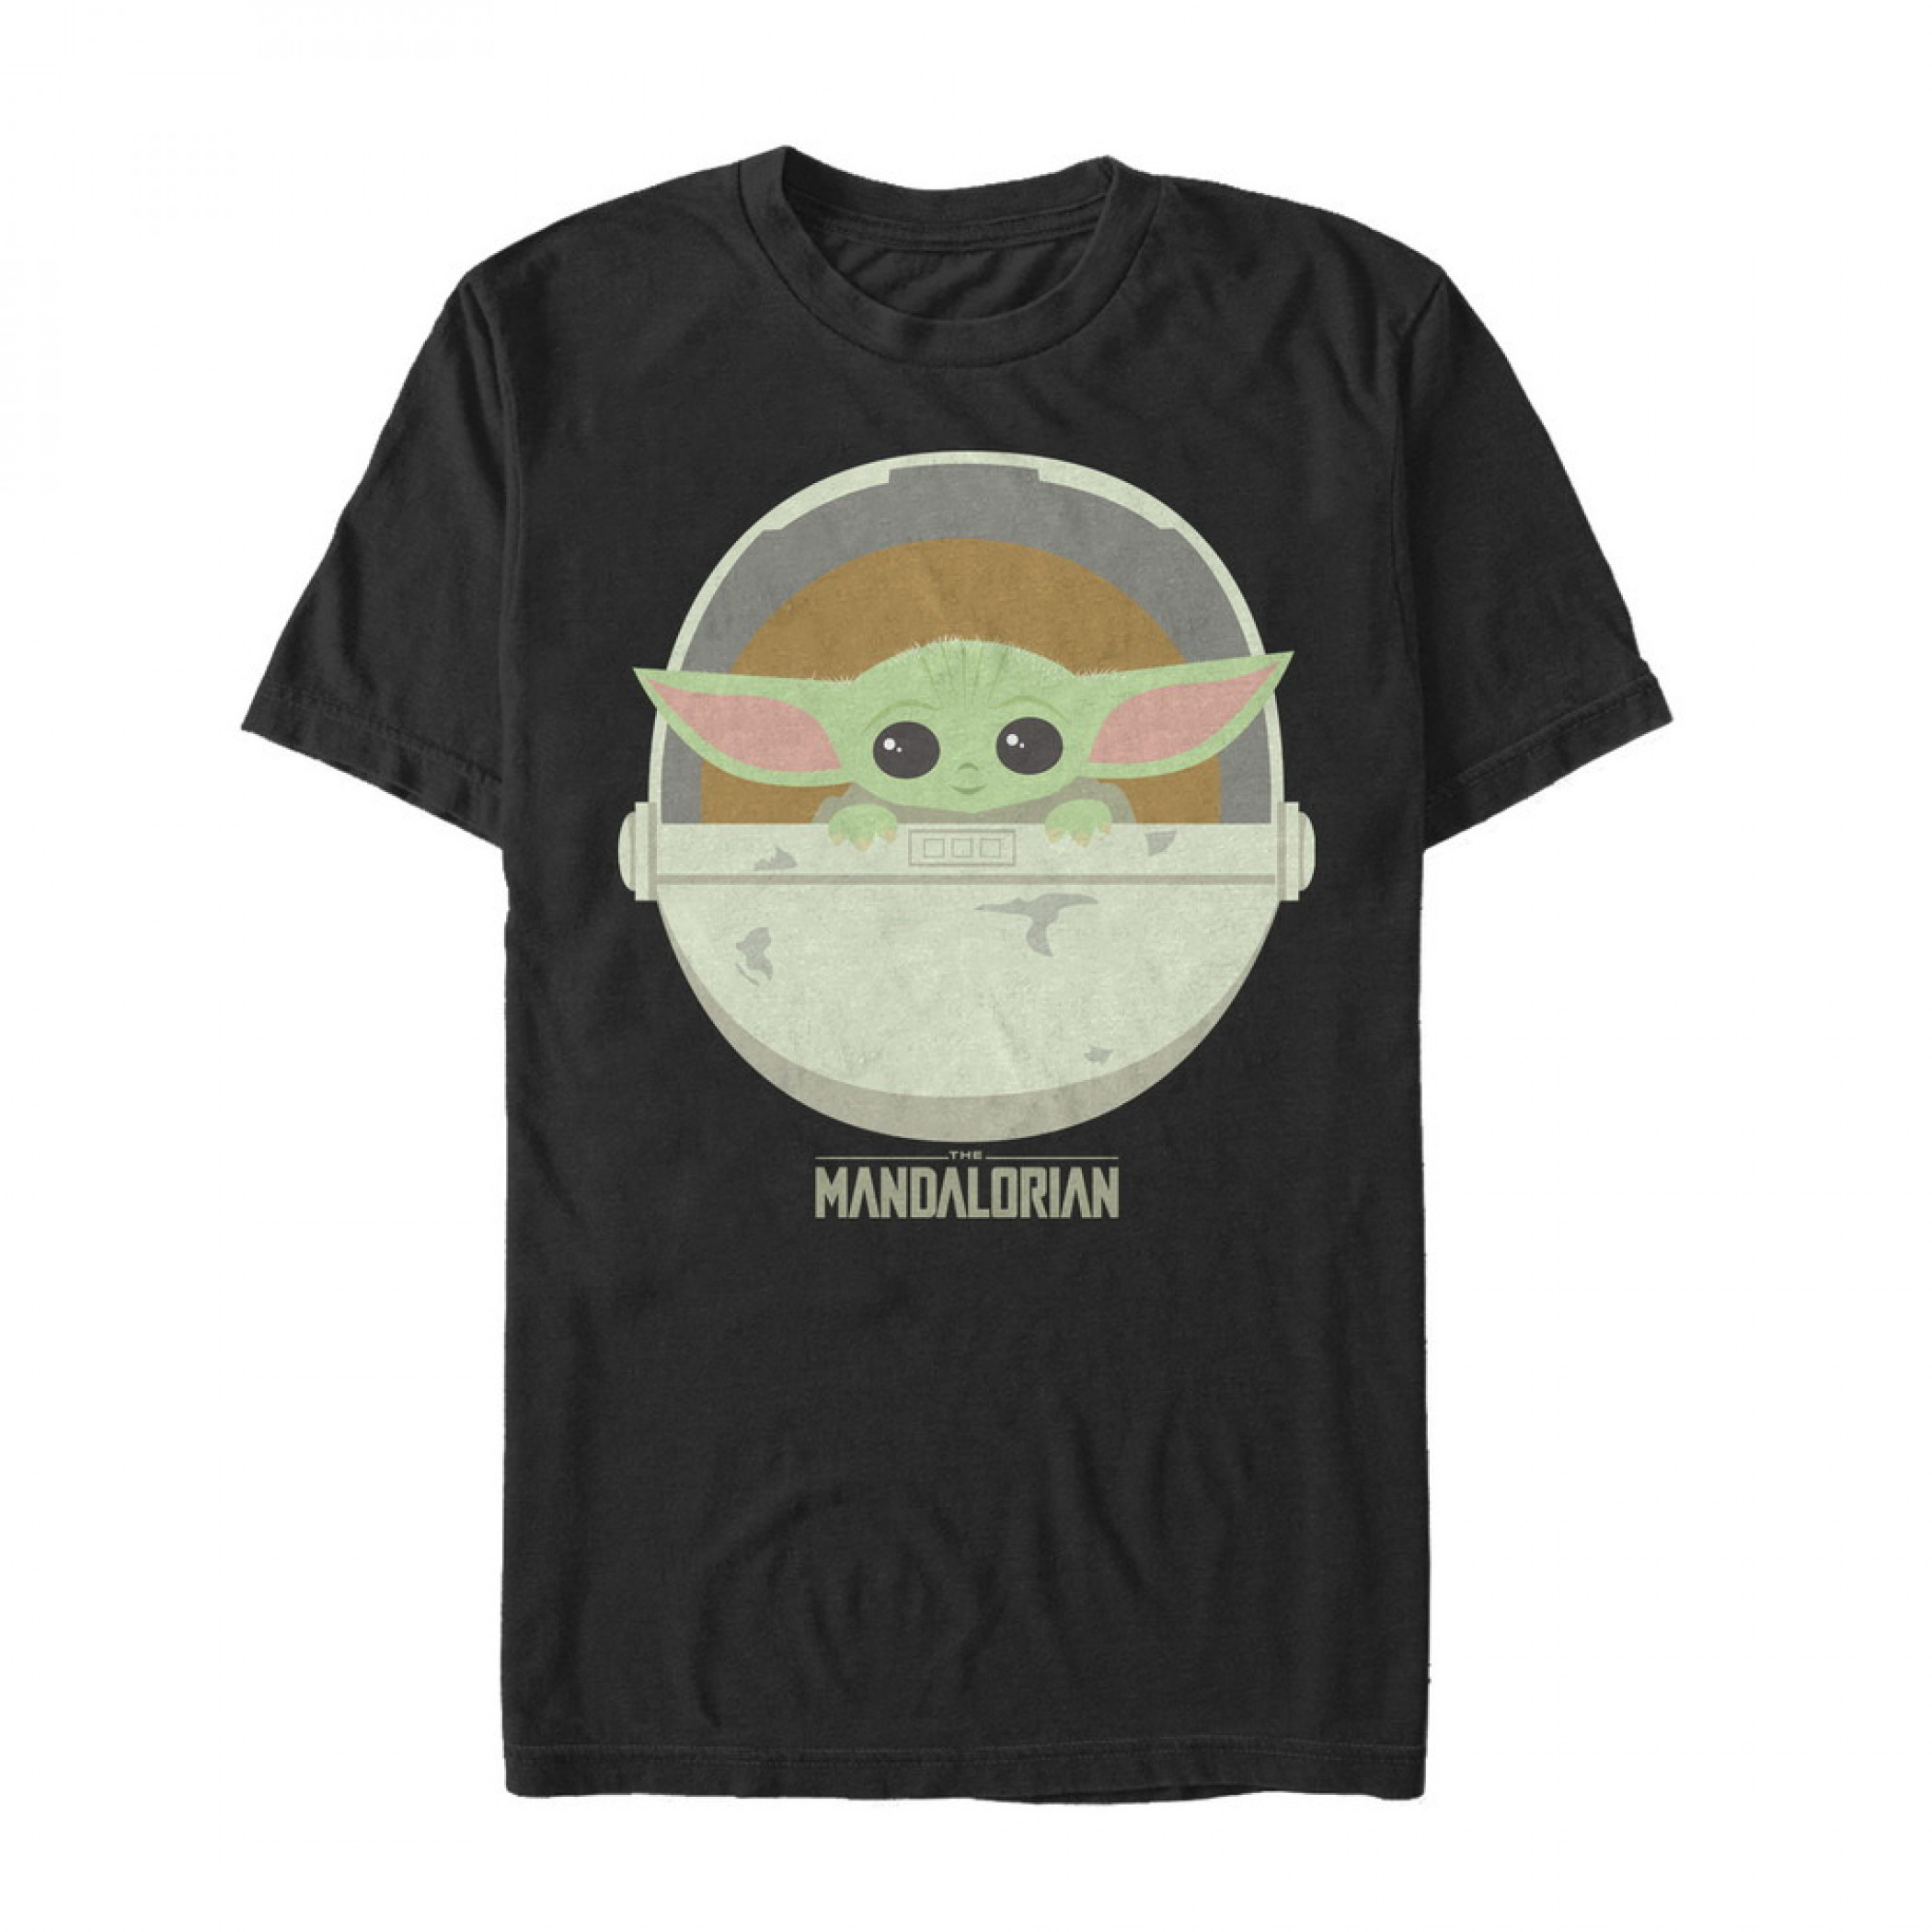 The Mandalorian Cute The Child Black T-Shirt